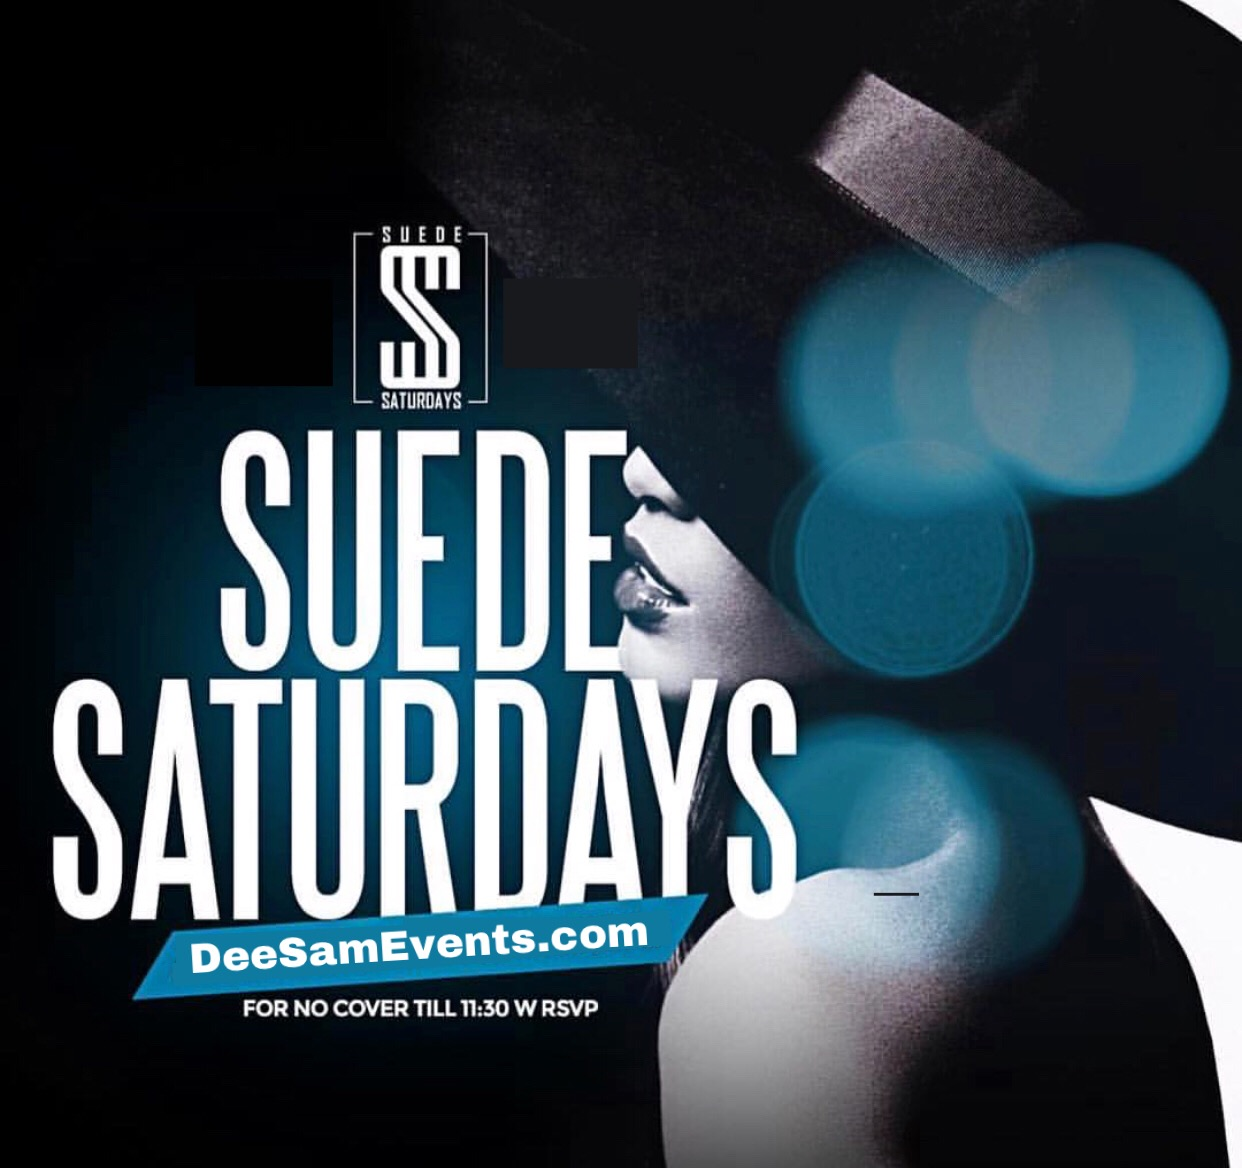 SUEDE SATURDAYS @ ENGINE ROOM | FREE ENTRY BEFORE 11:30 w